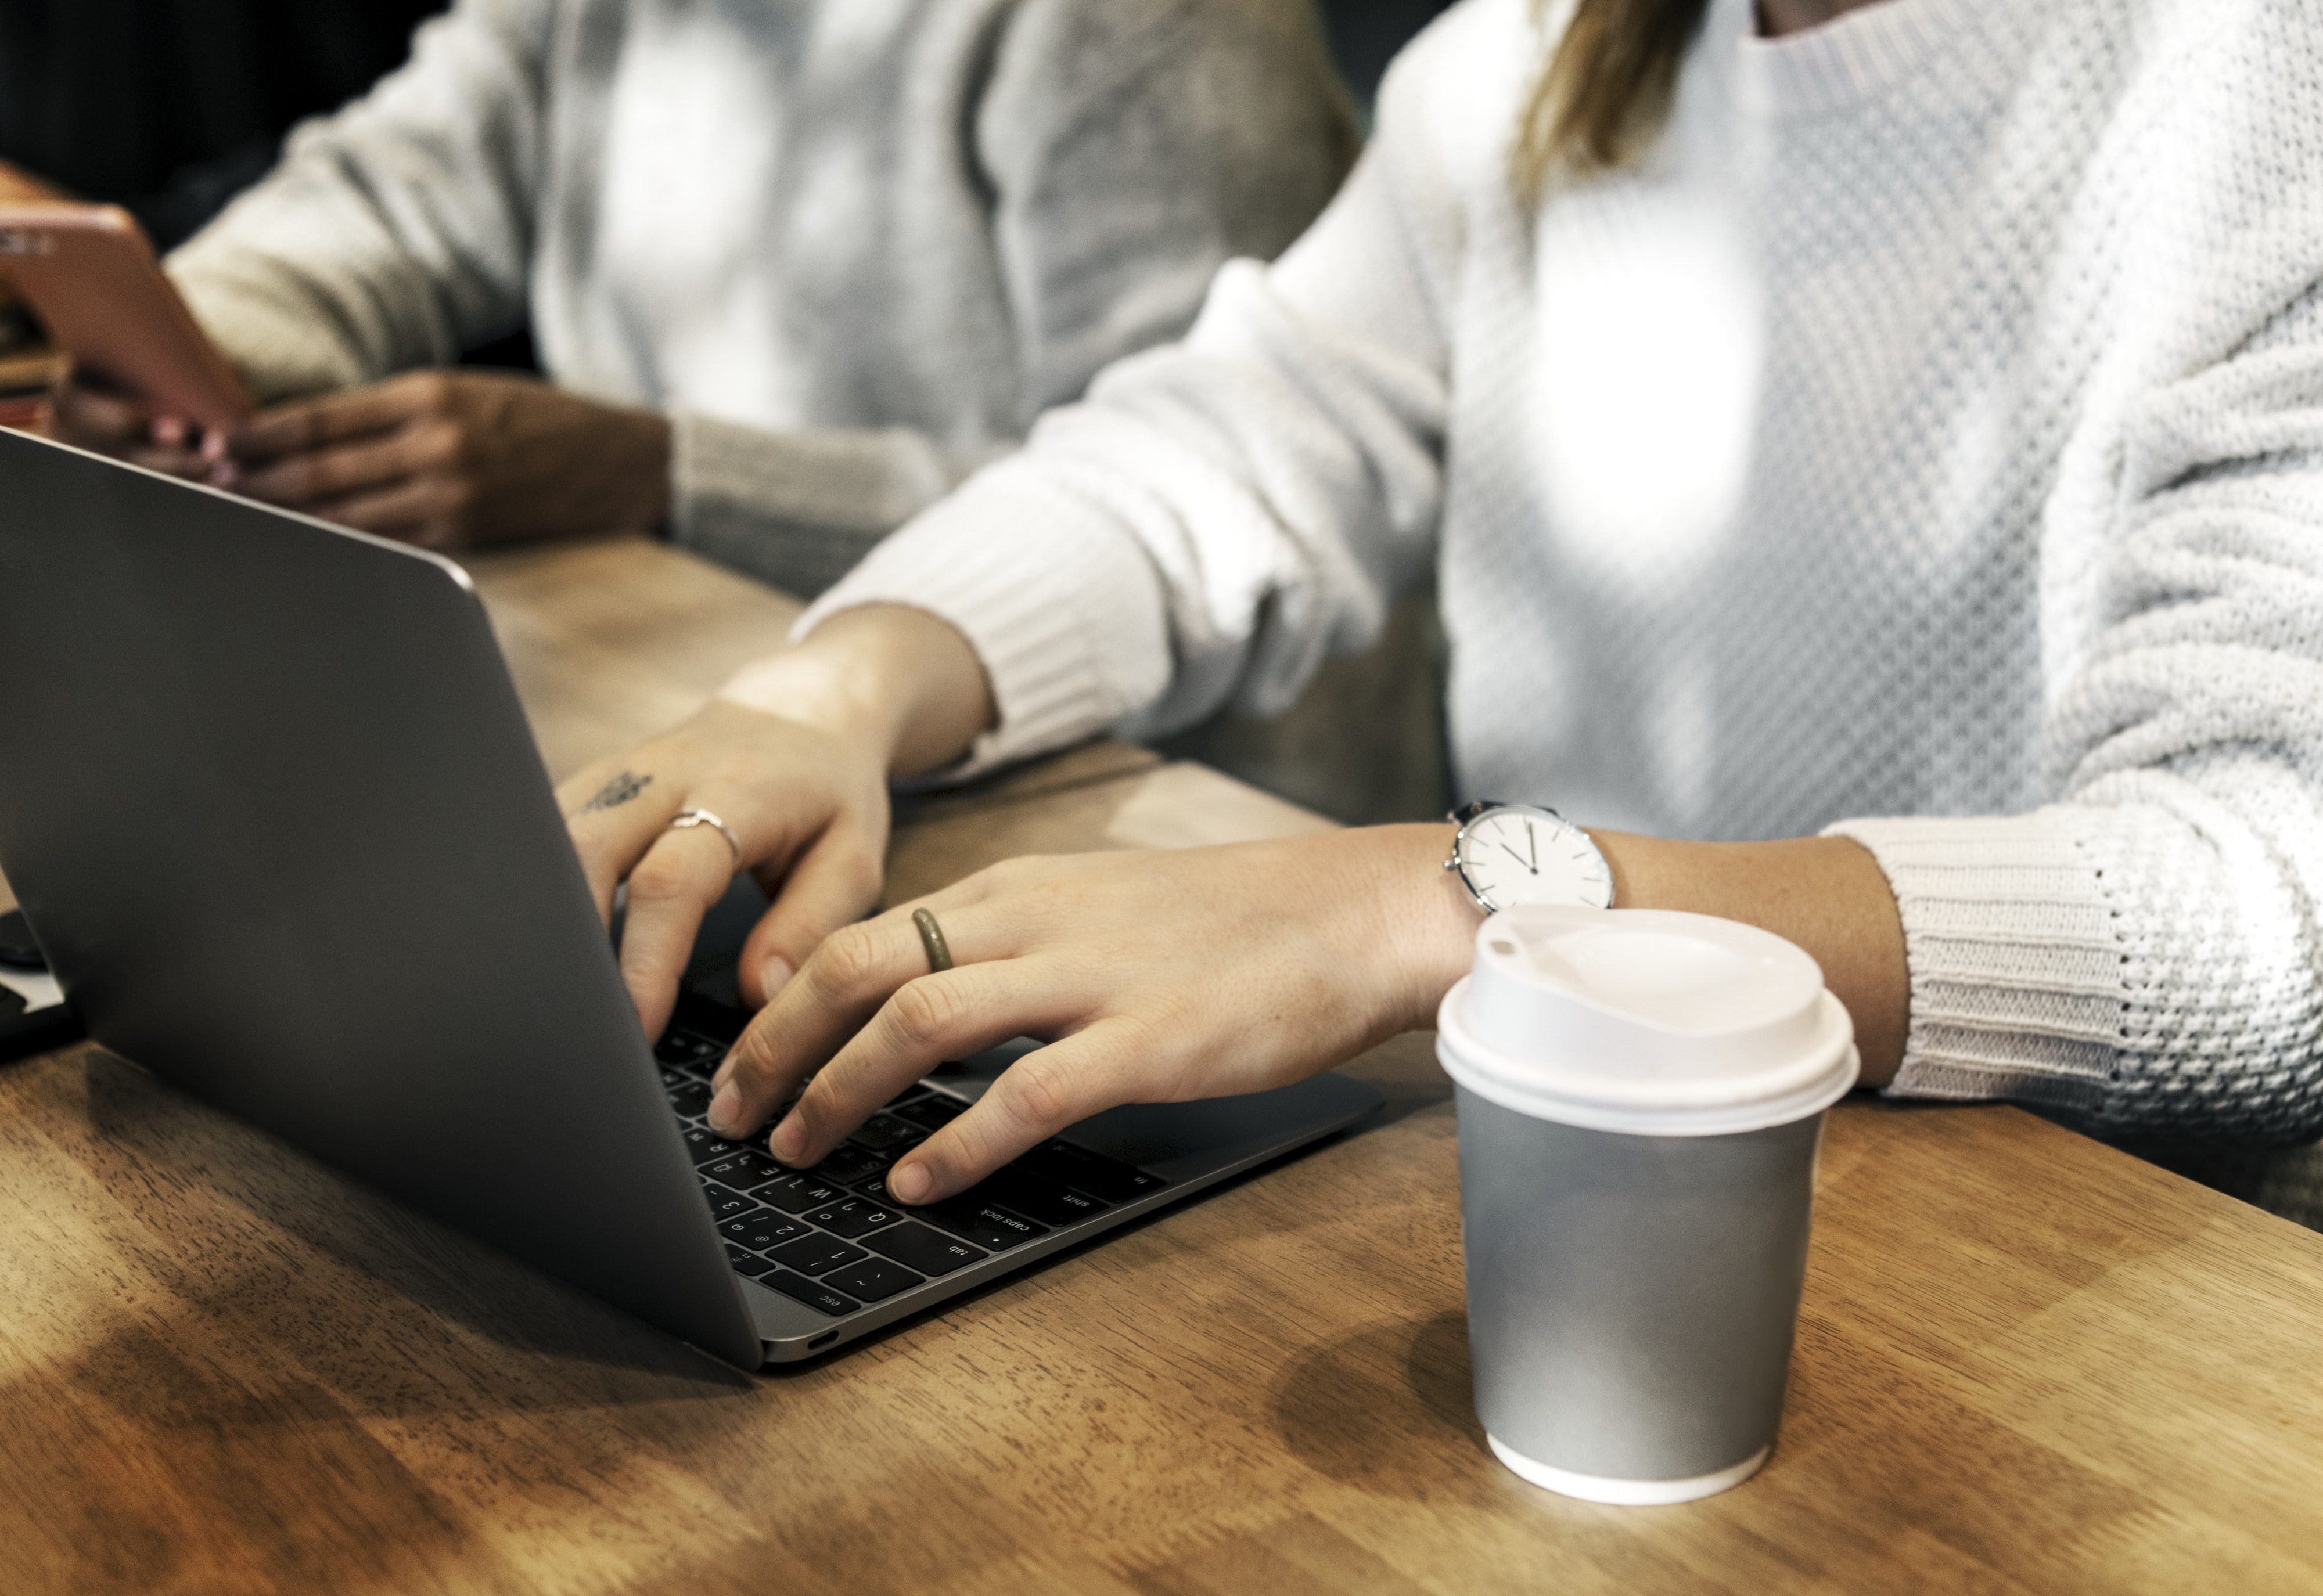 woman using laptop beside grey disposable cup on table